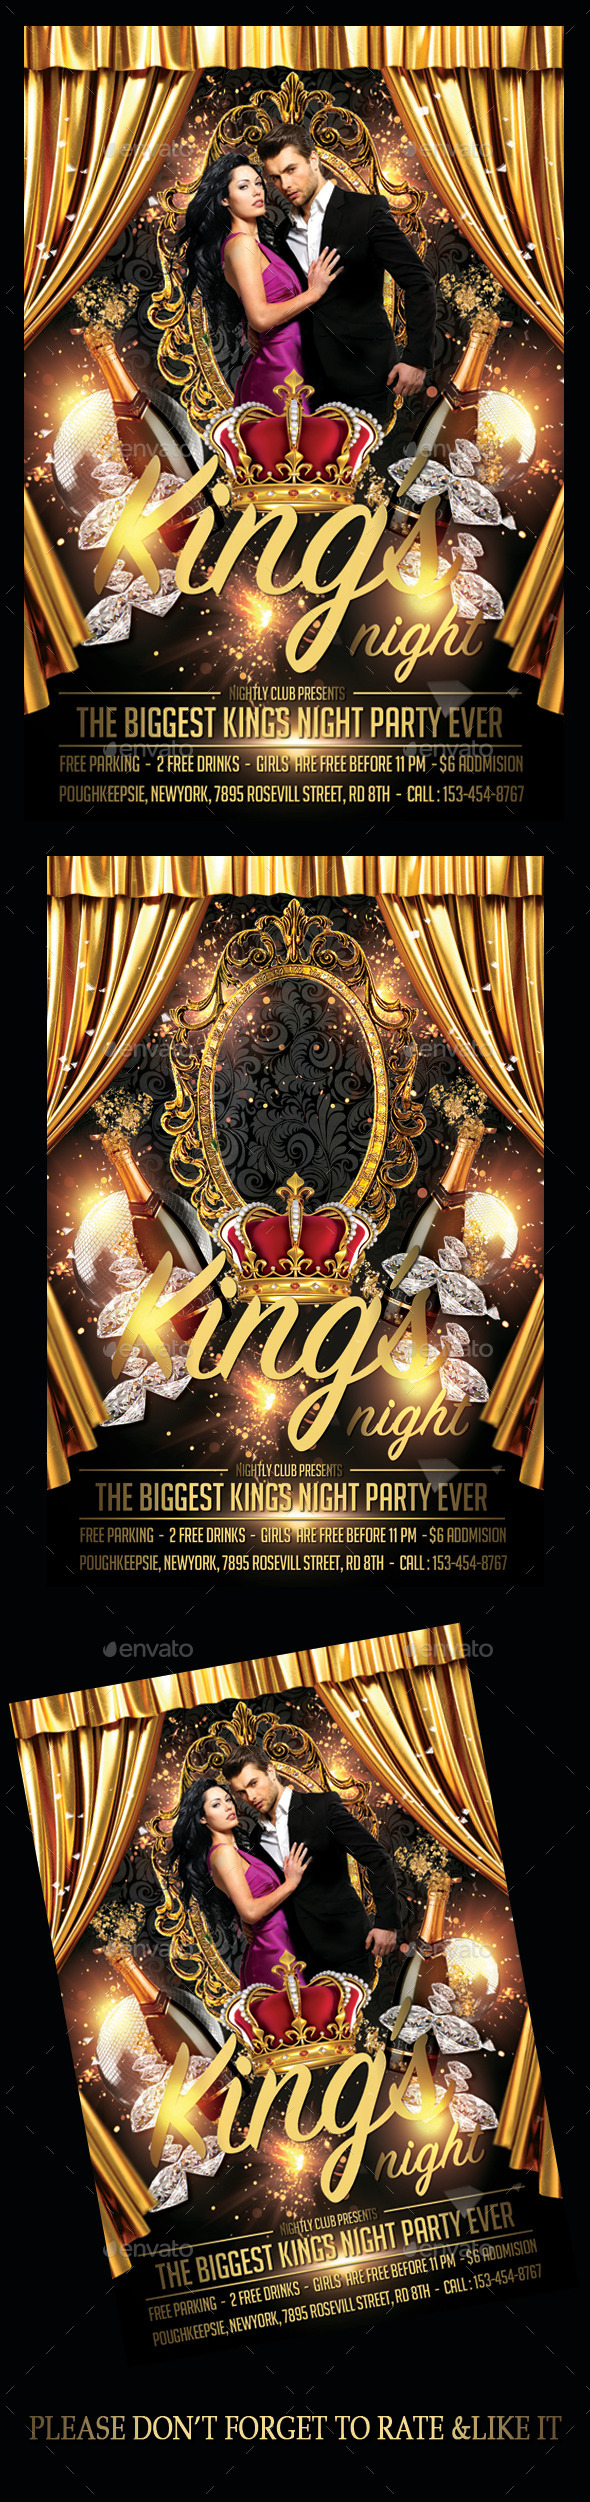 Kings Night Flyer - Flyers Print Templates